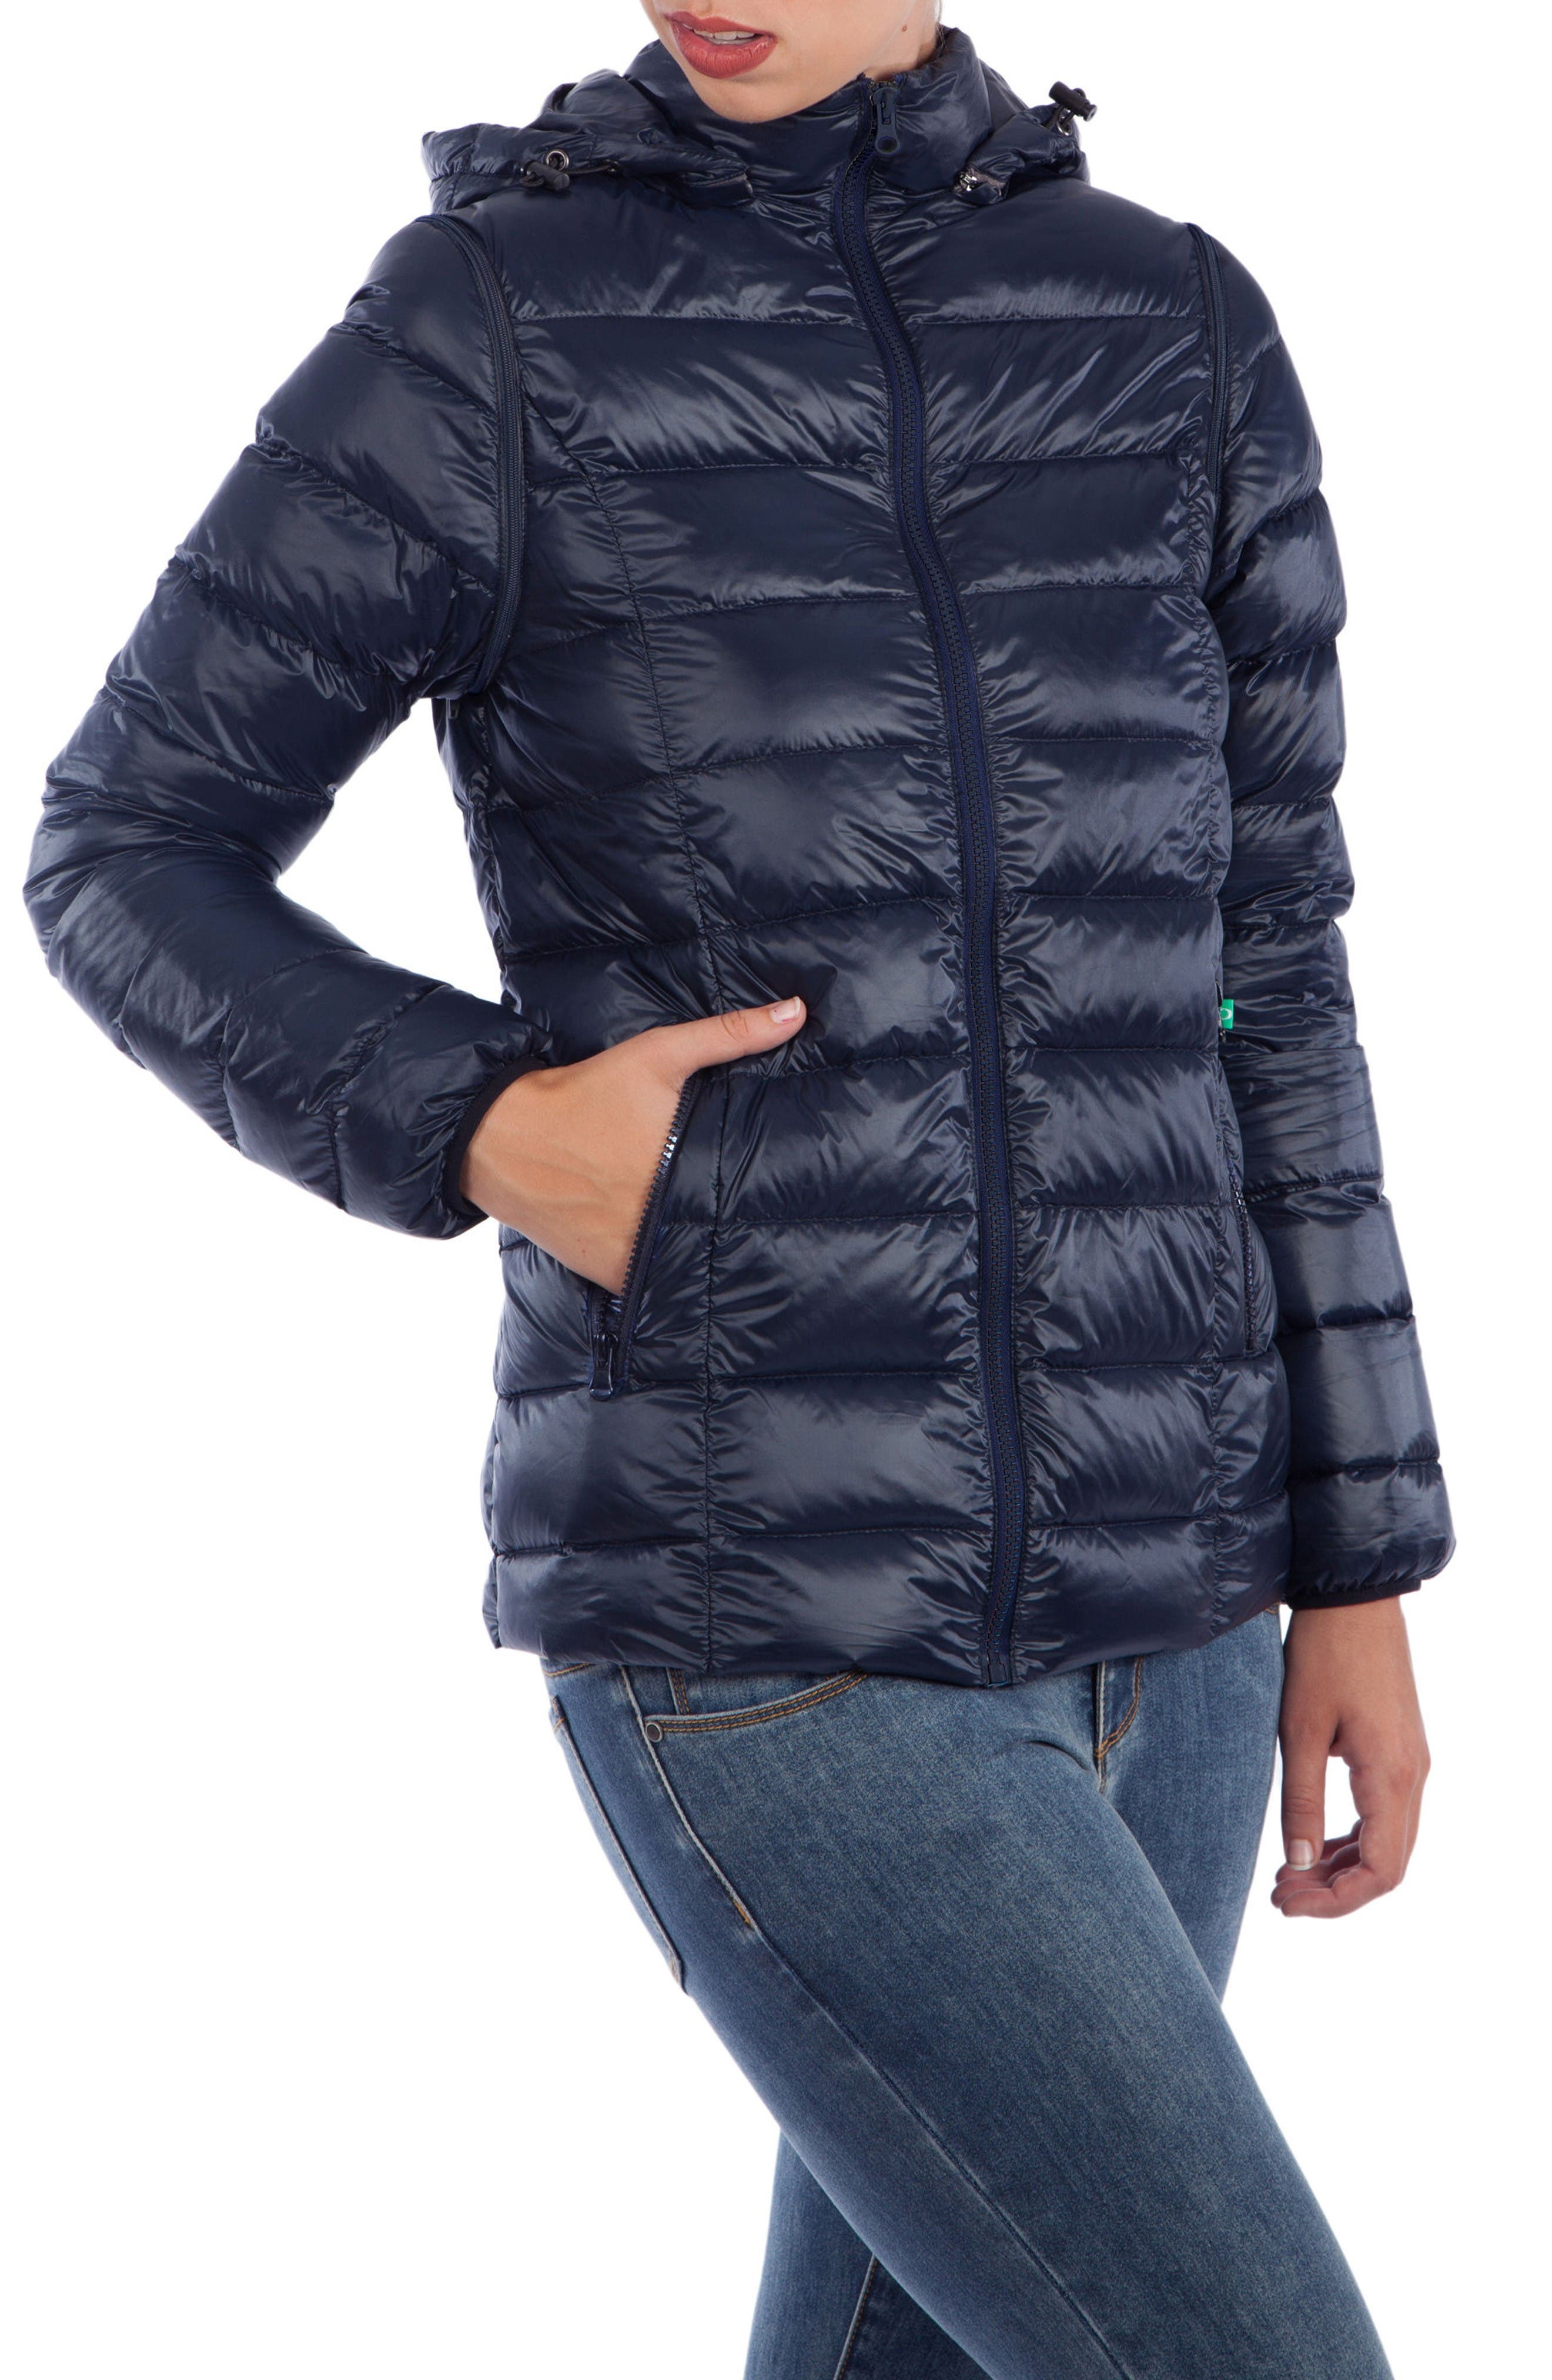 Alternate Image 1 Selected - Modern Eternity Lightweight Puffer Convertible Maternity Jacket